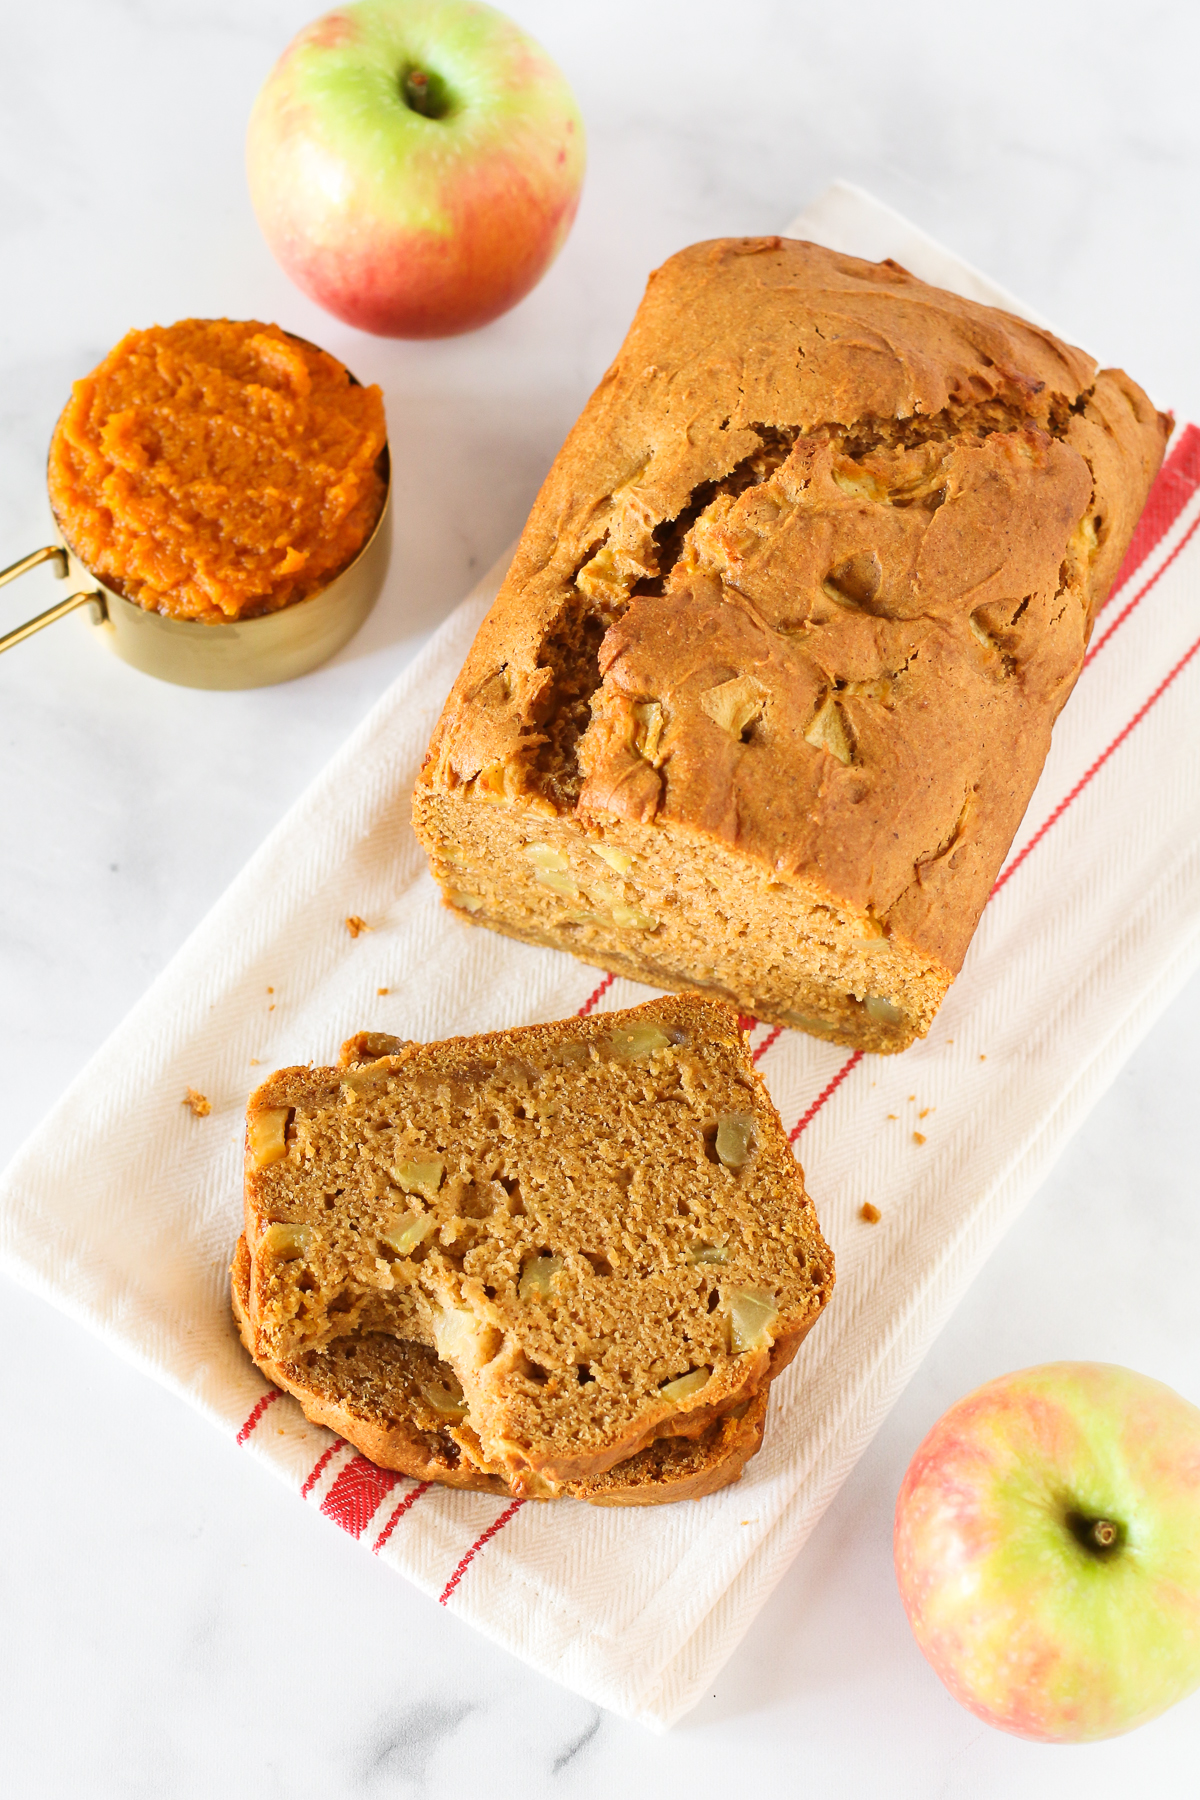 Gluten Free Vegan Pumpkin Apple Bread. Moist pumpkin bread, perfectly spiced and loaded with fresh apples.